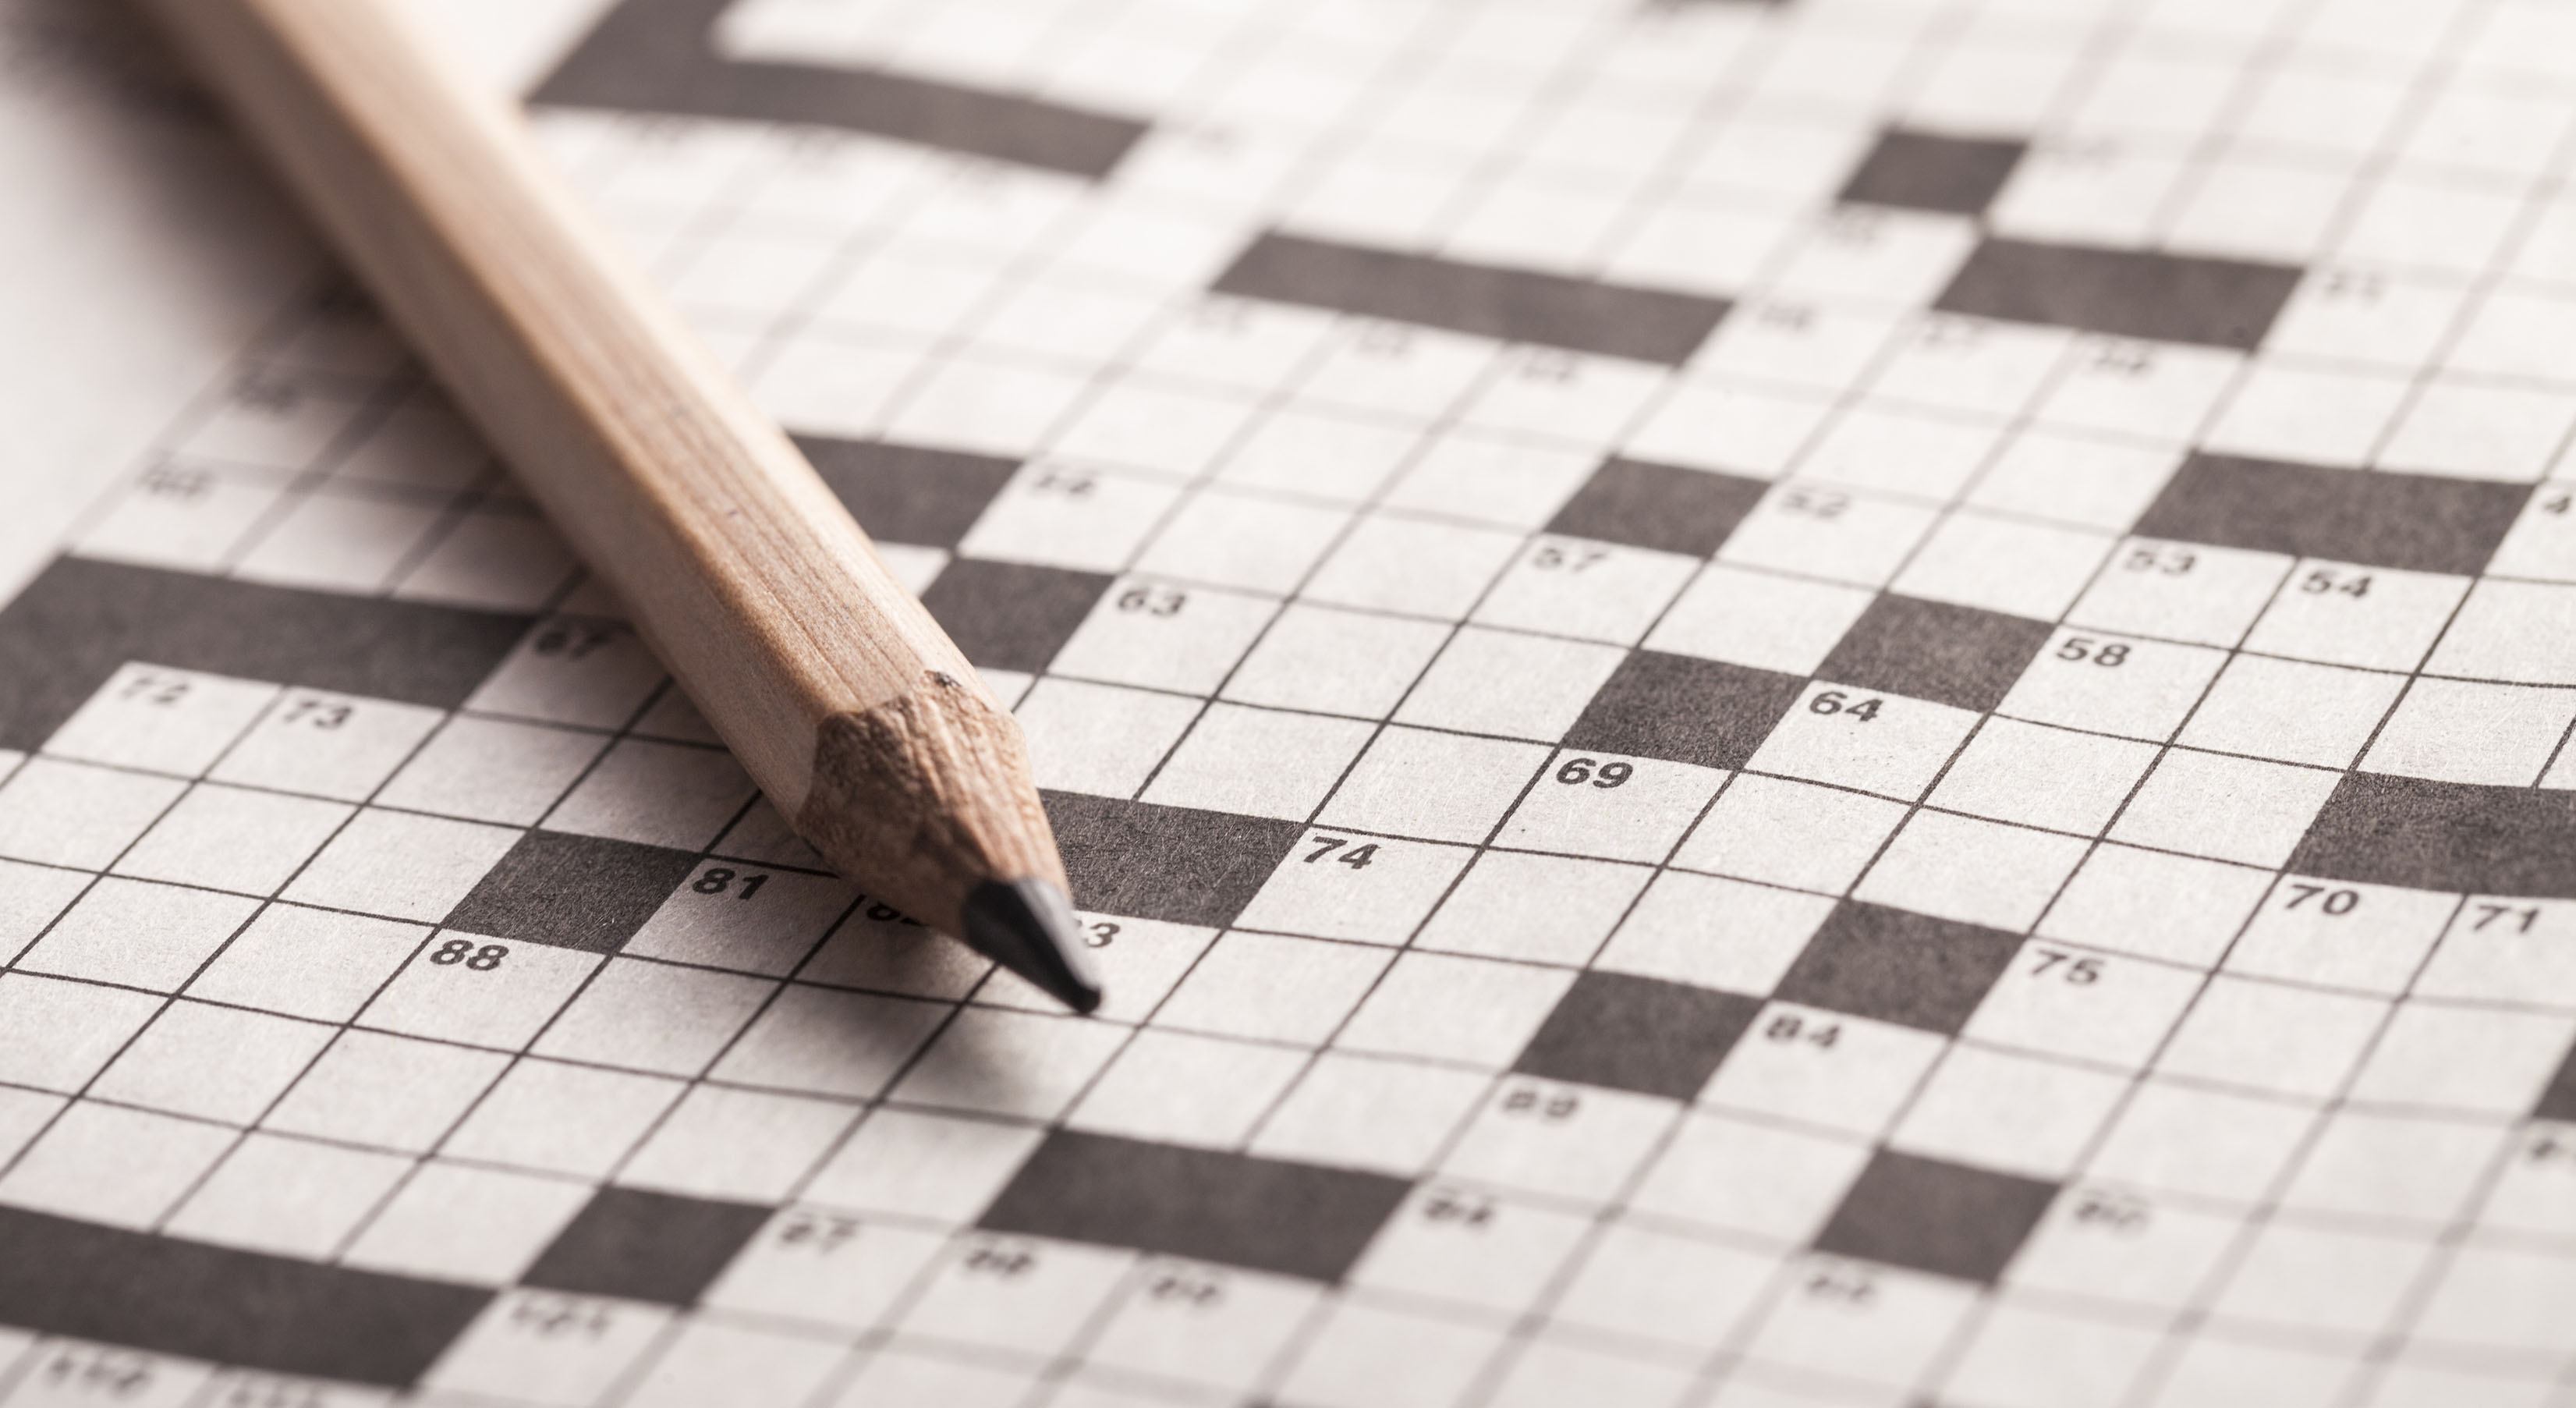 LEARN MORE EFFICIENTLY WITH BILINGUAL CROSSWORDS